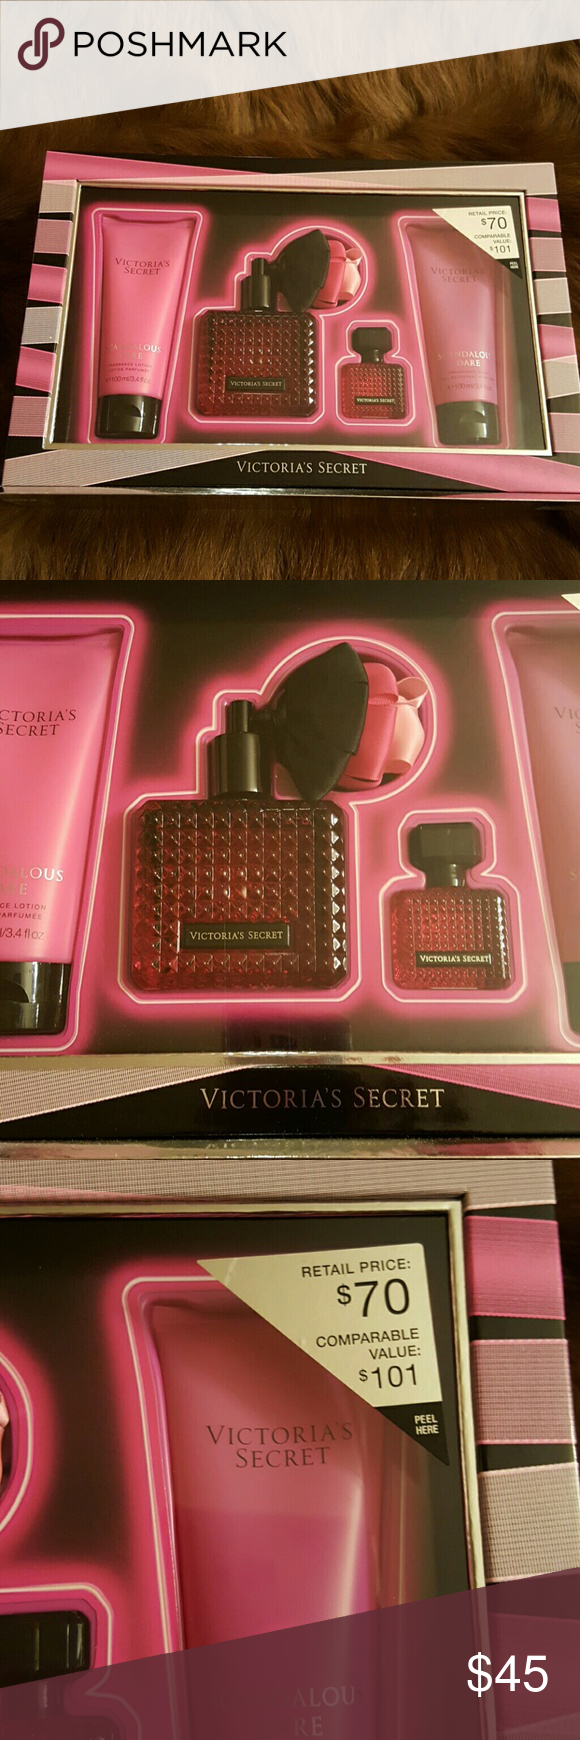 Victorias Secret Scandalous Dare set Perfume Set. As you can see this retails for $70. I'm letting it go for $45.  Hurry it won't last at this price. No low ball offers please. Remember as,a seller we are charged a fee to sell. Your saving the tax also. I paid it on the $70. Victoria's Secret Other